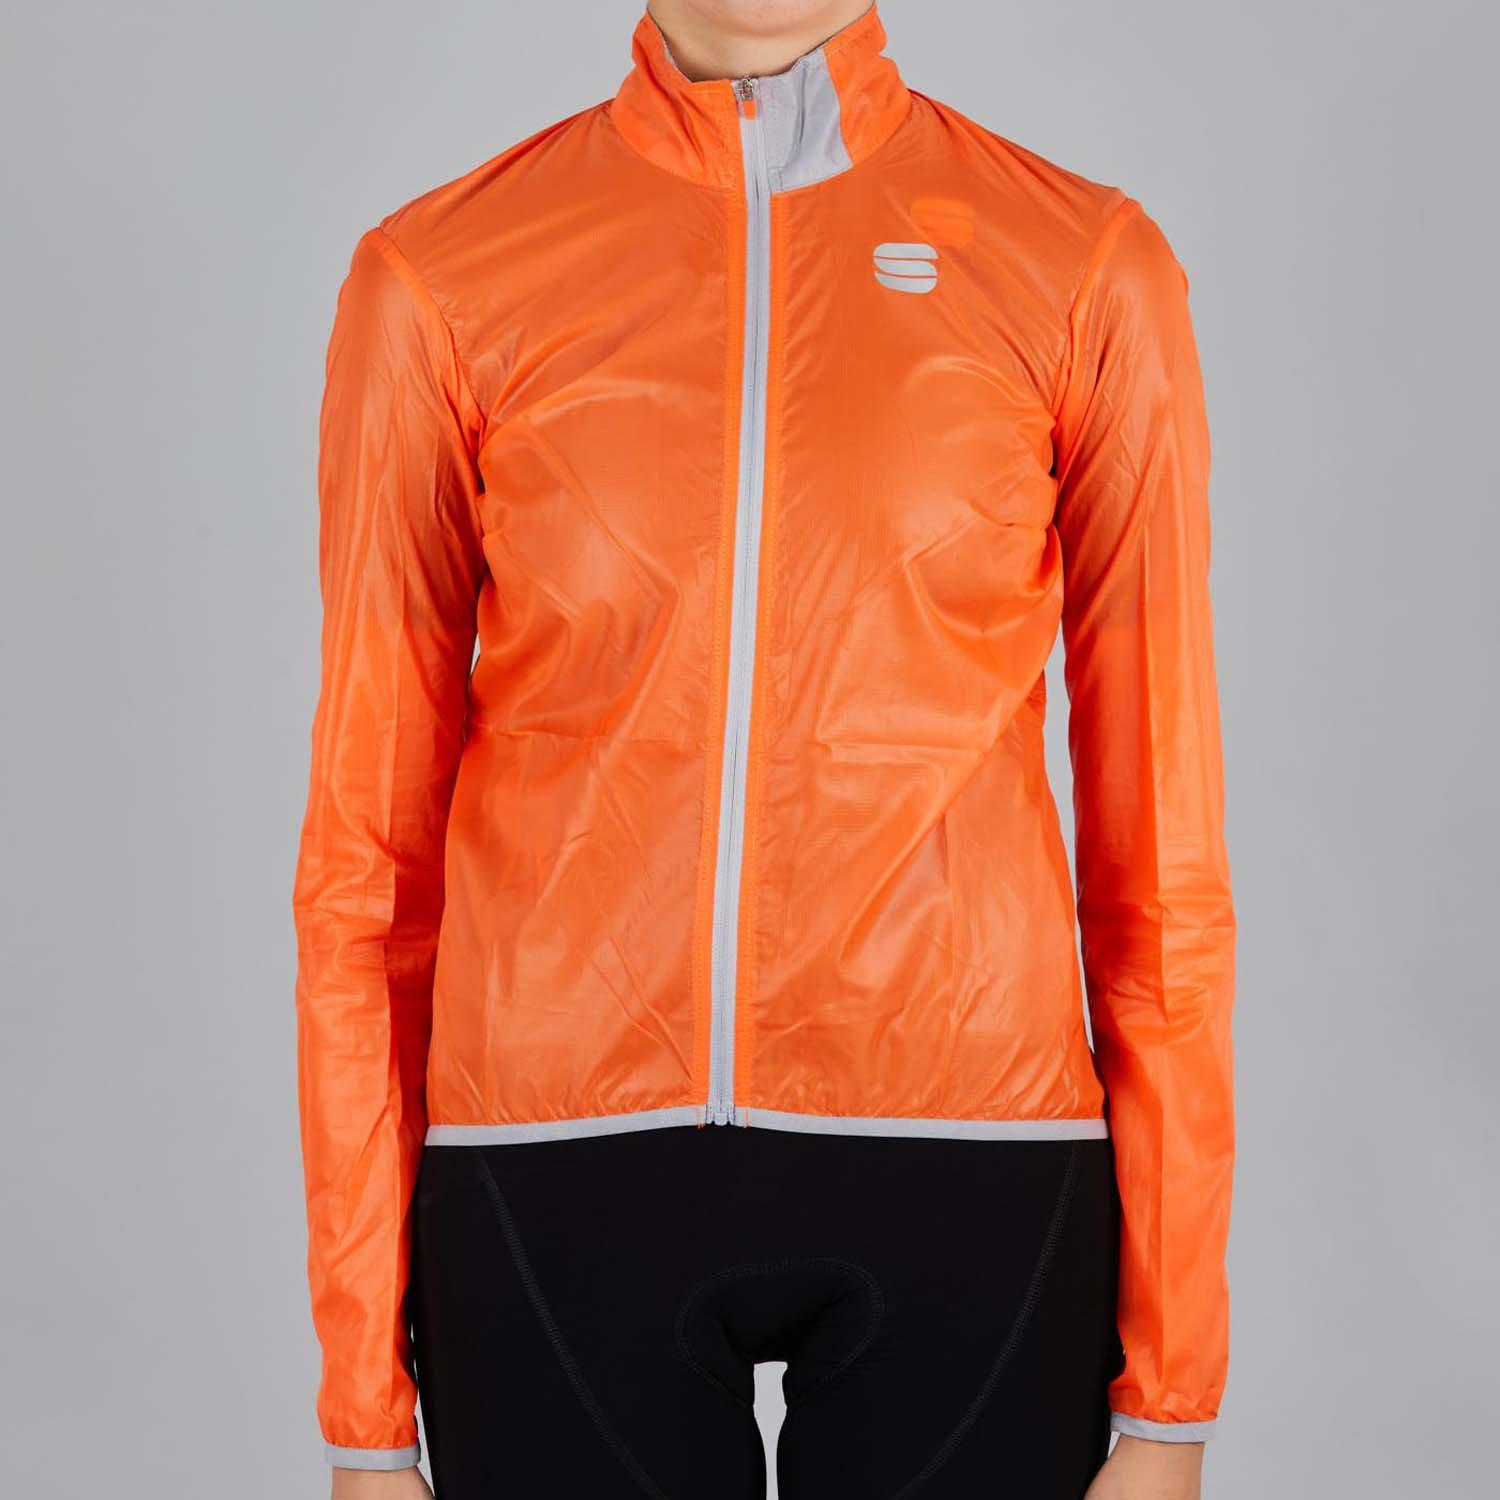 Sportful-Sportful Hot Pack Easylight Women's Jacket-Orange SDR-XS-SF020288501-saddleback-elite-performance-cycling